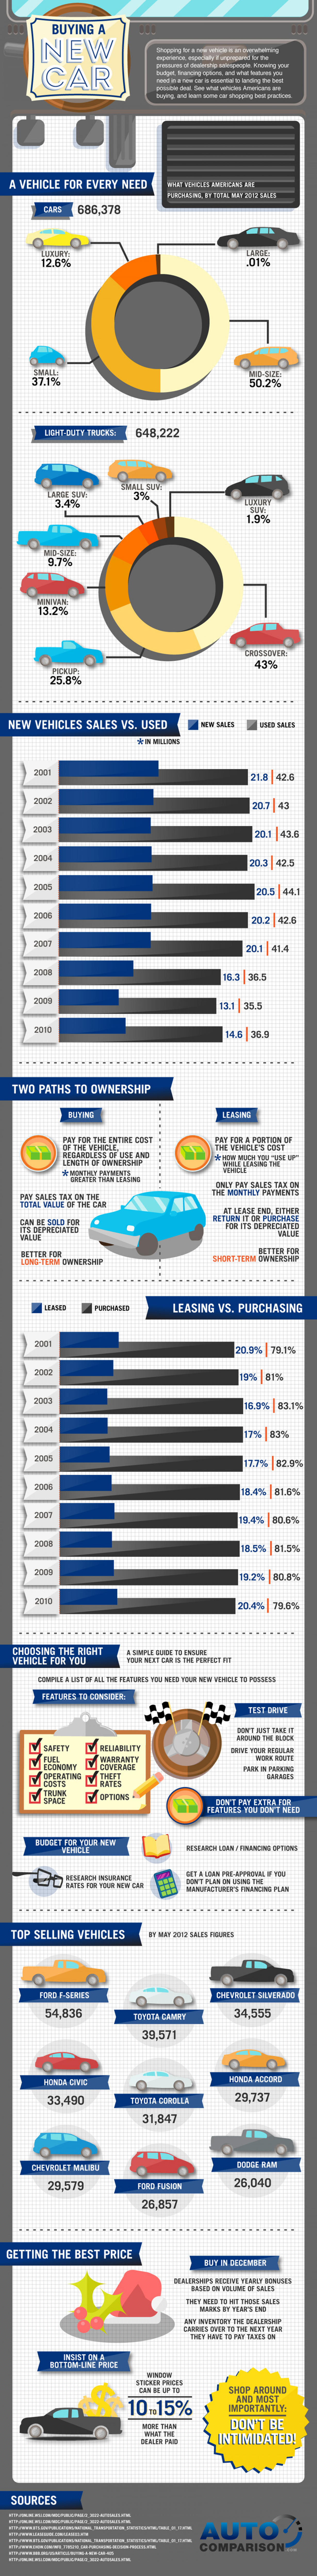 Buy a new Car Infographic